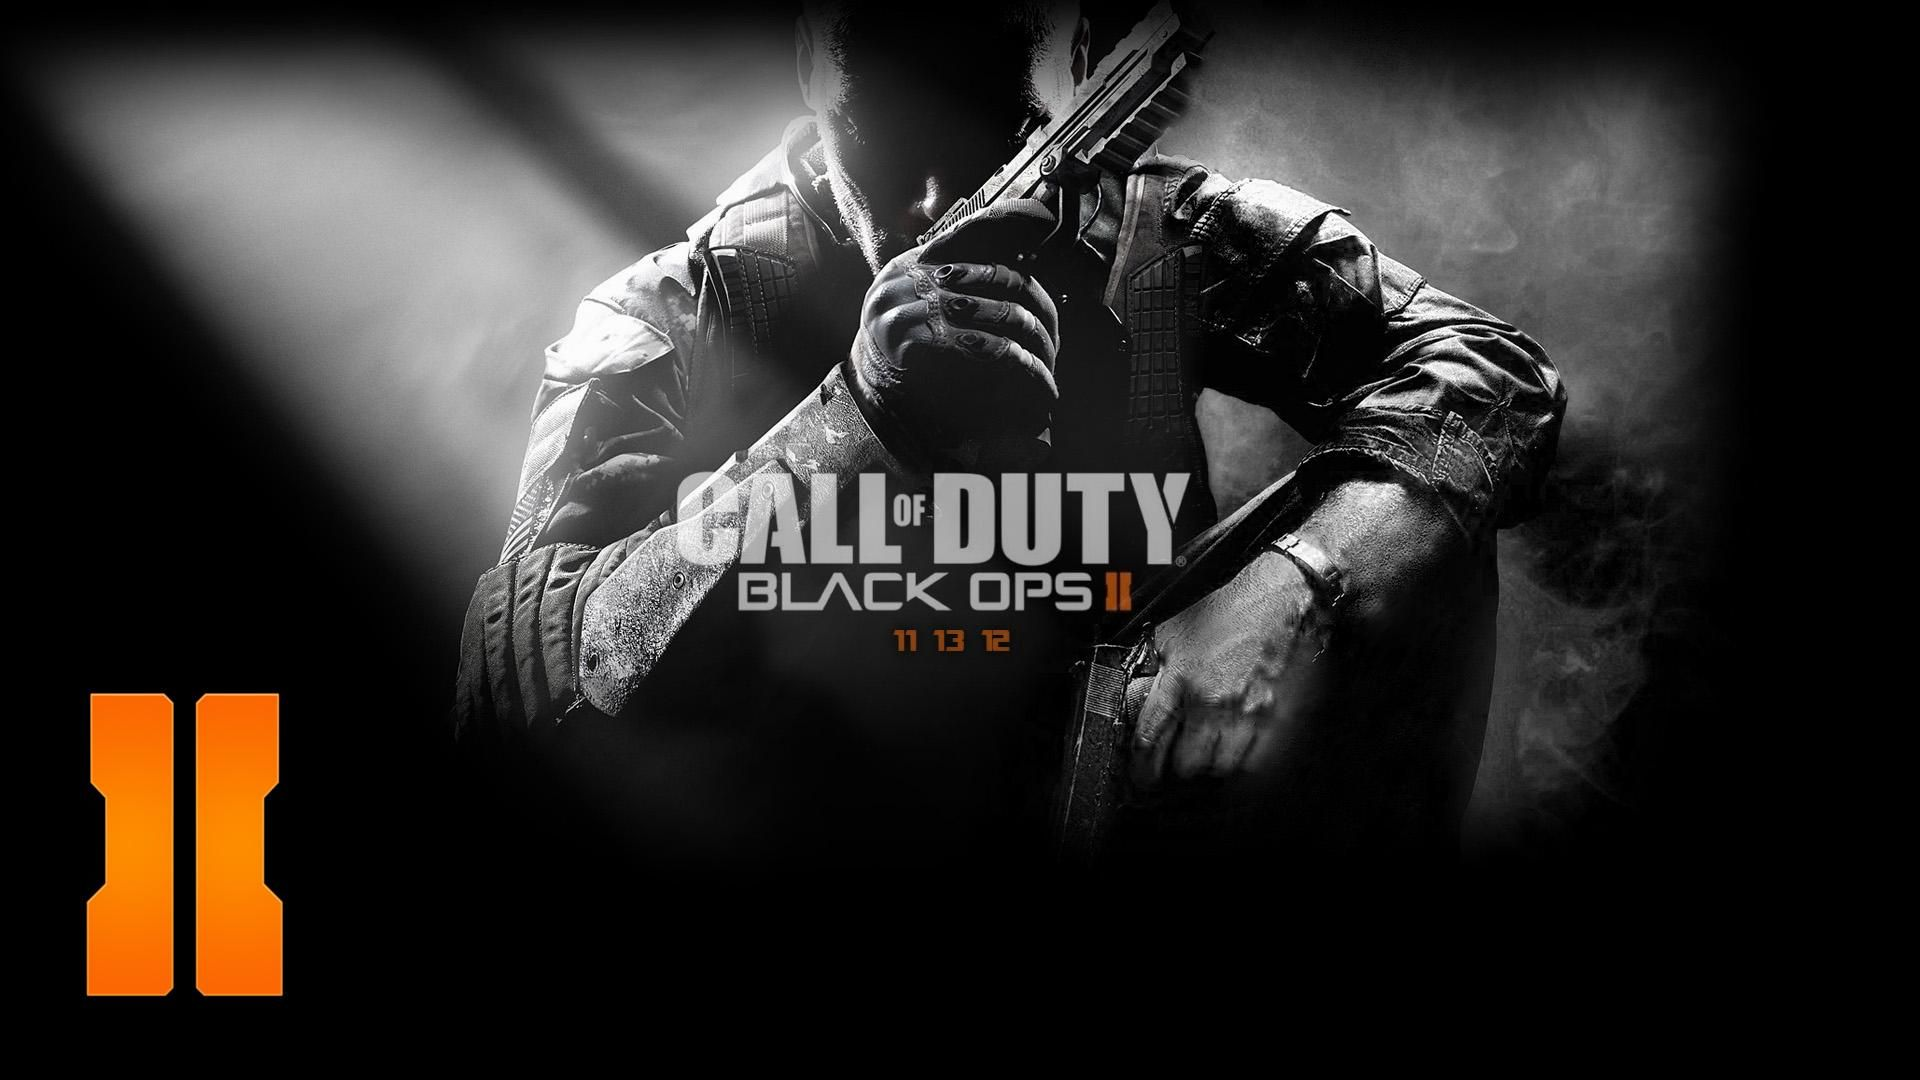 Black Ops 2 Wallpapers Top Free Black Ops 2 Backgrounds